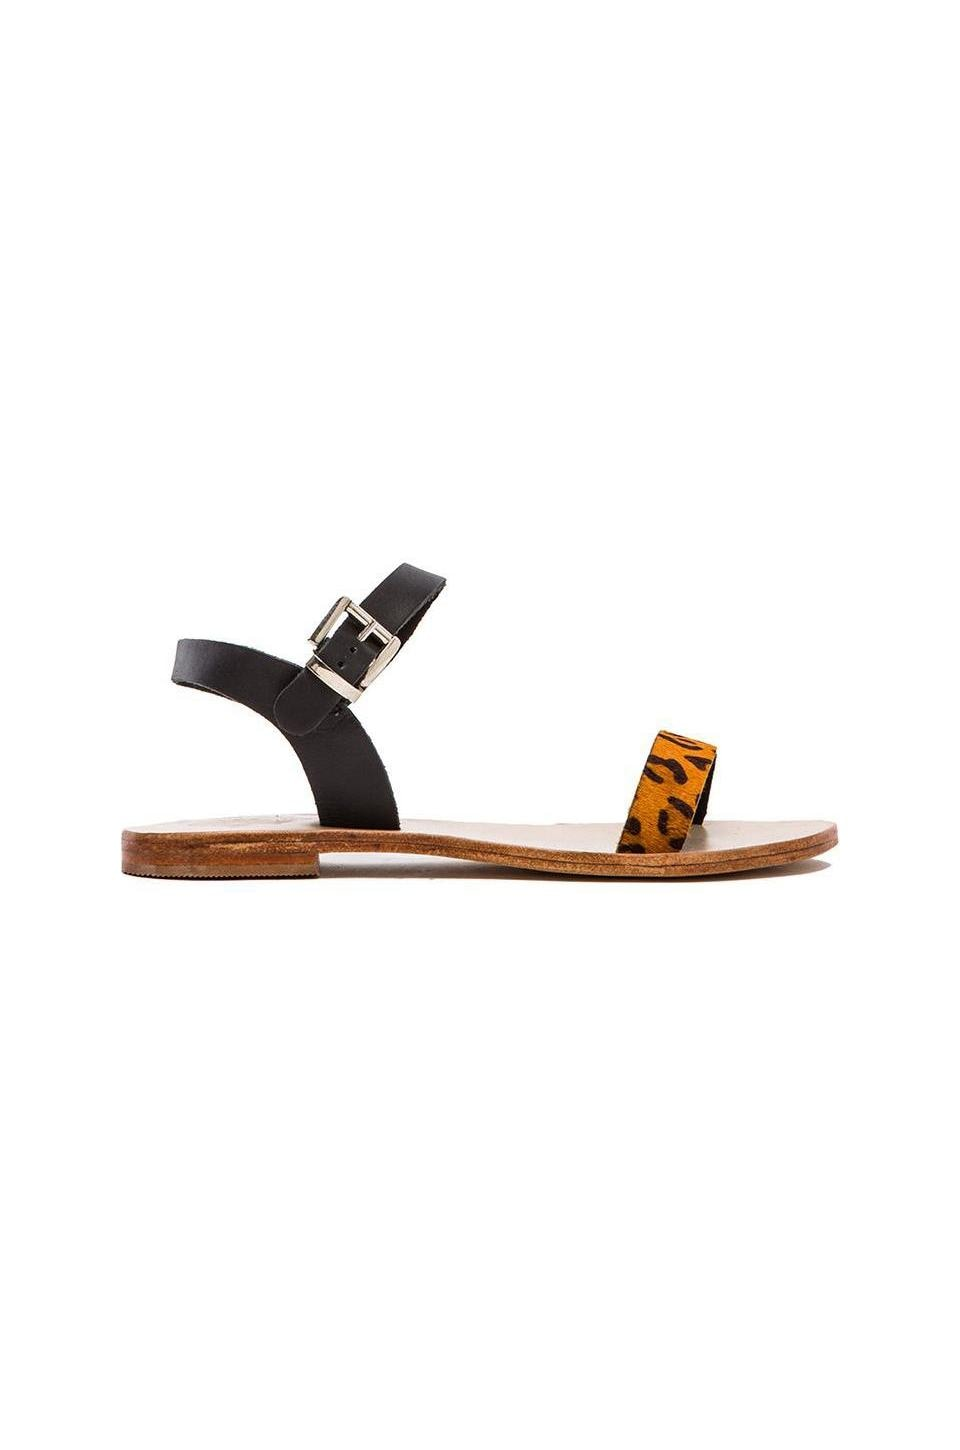 Sol Sana Rebel Calf Hair Sandal in Black & Orange Pony